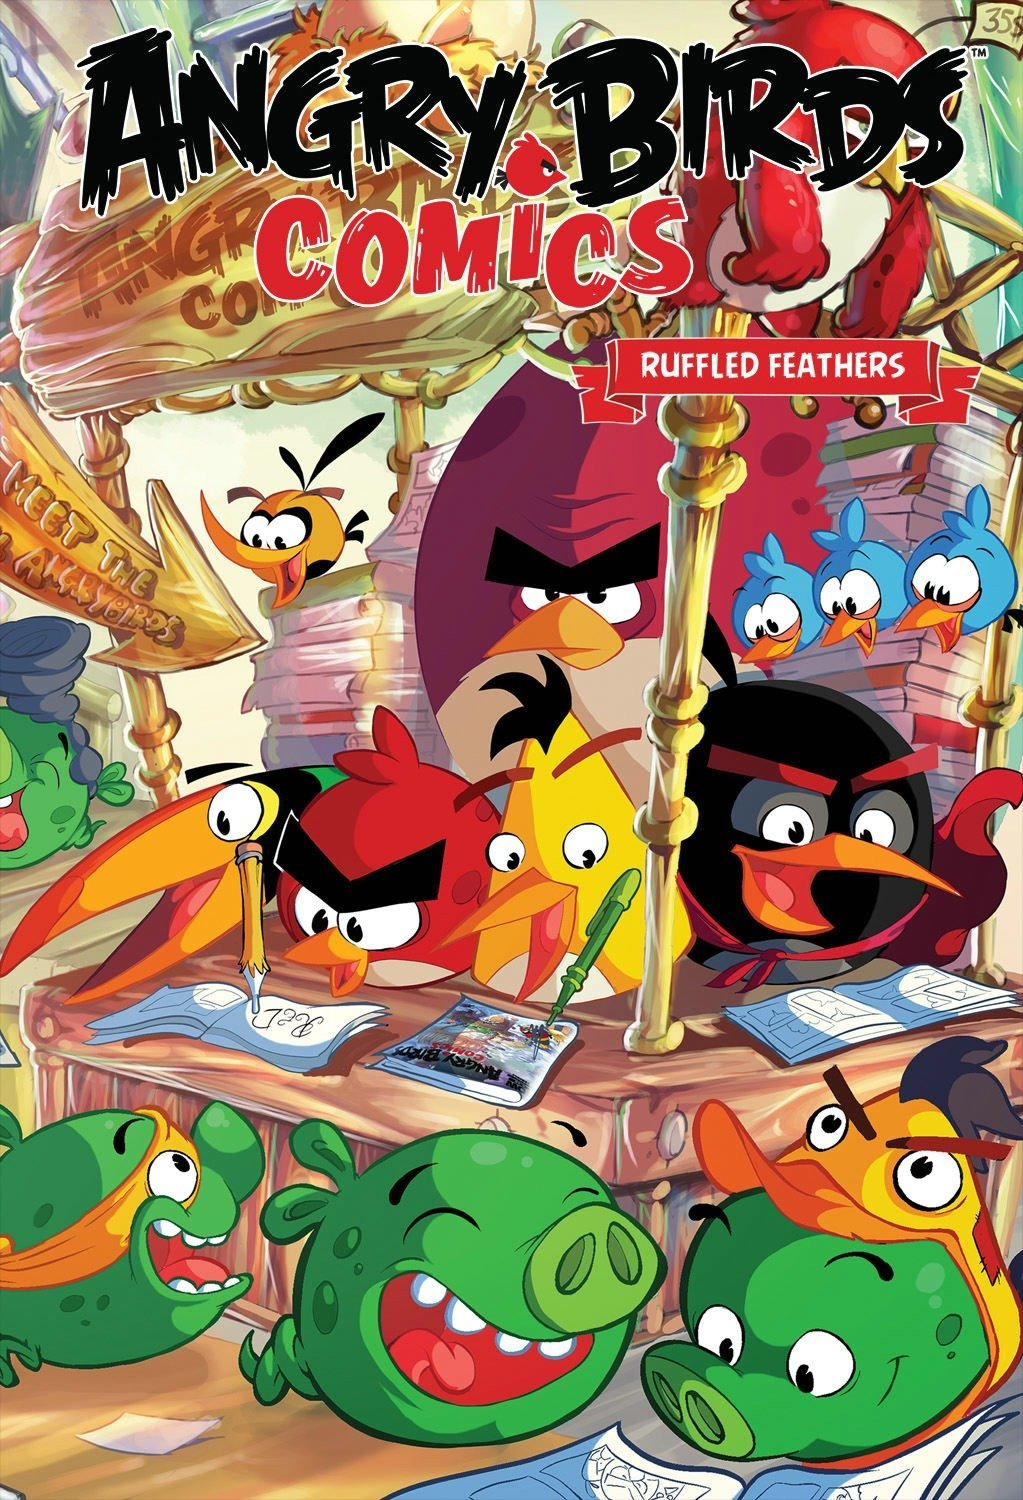 Angry Birds Comics Volume 5: Ruffled Feathers